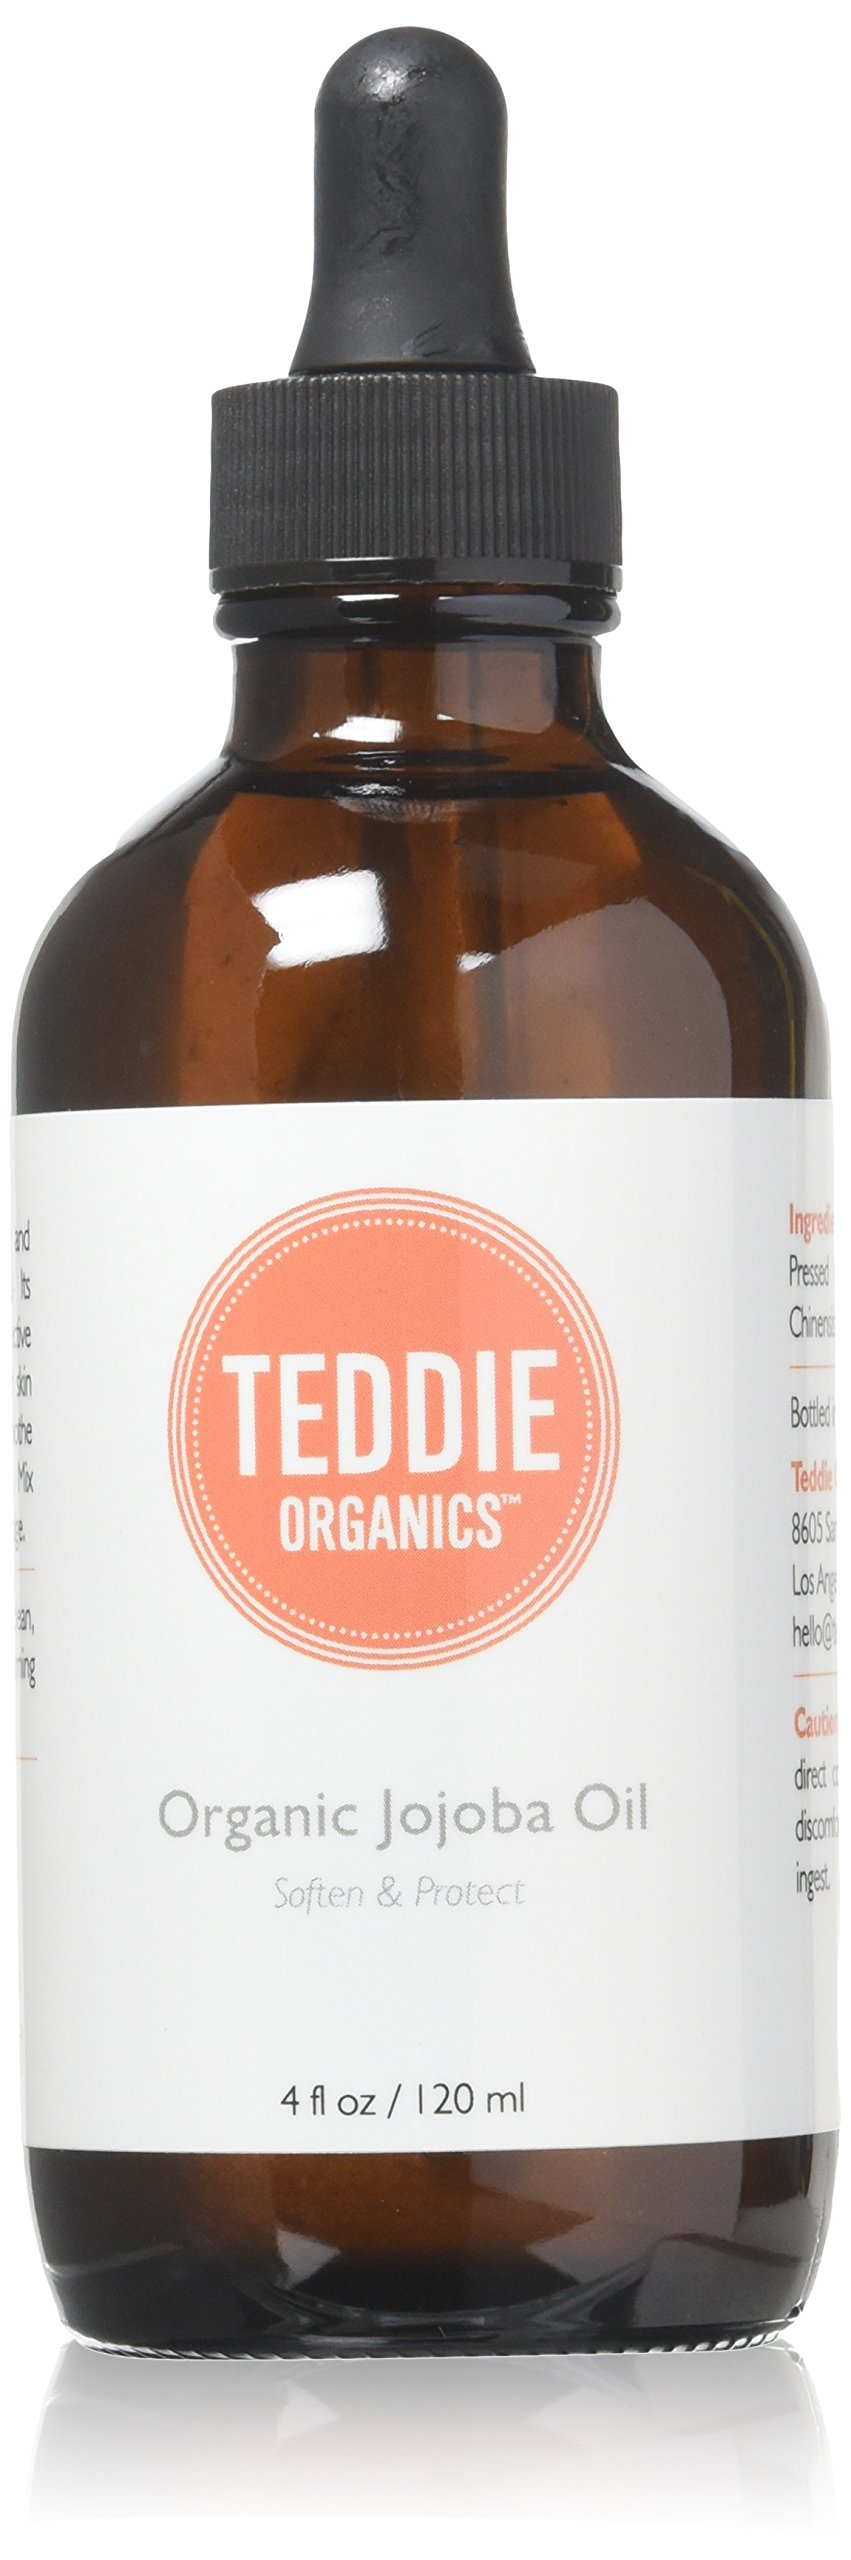 Teddie Organics Golden Jojoba Oil 100% Pure Organic Cold Pressed and Unrefined 4oz - Natural Moisturizer for Face Hair and Sensitive Skin, Carrier Oil for Essential Oils